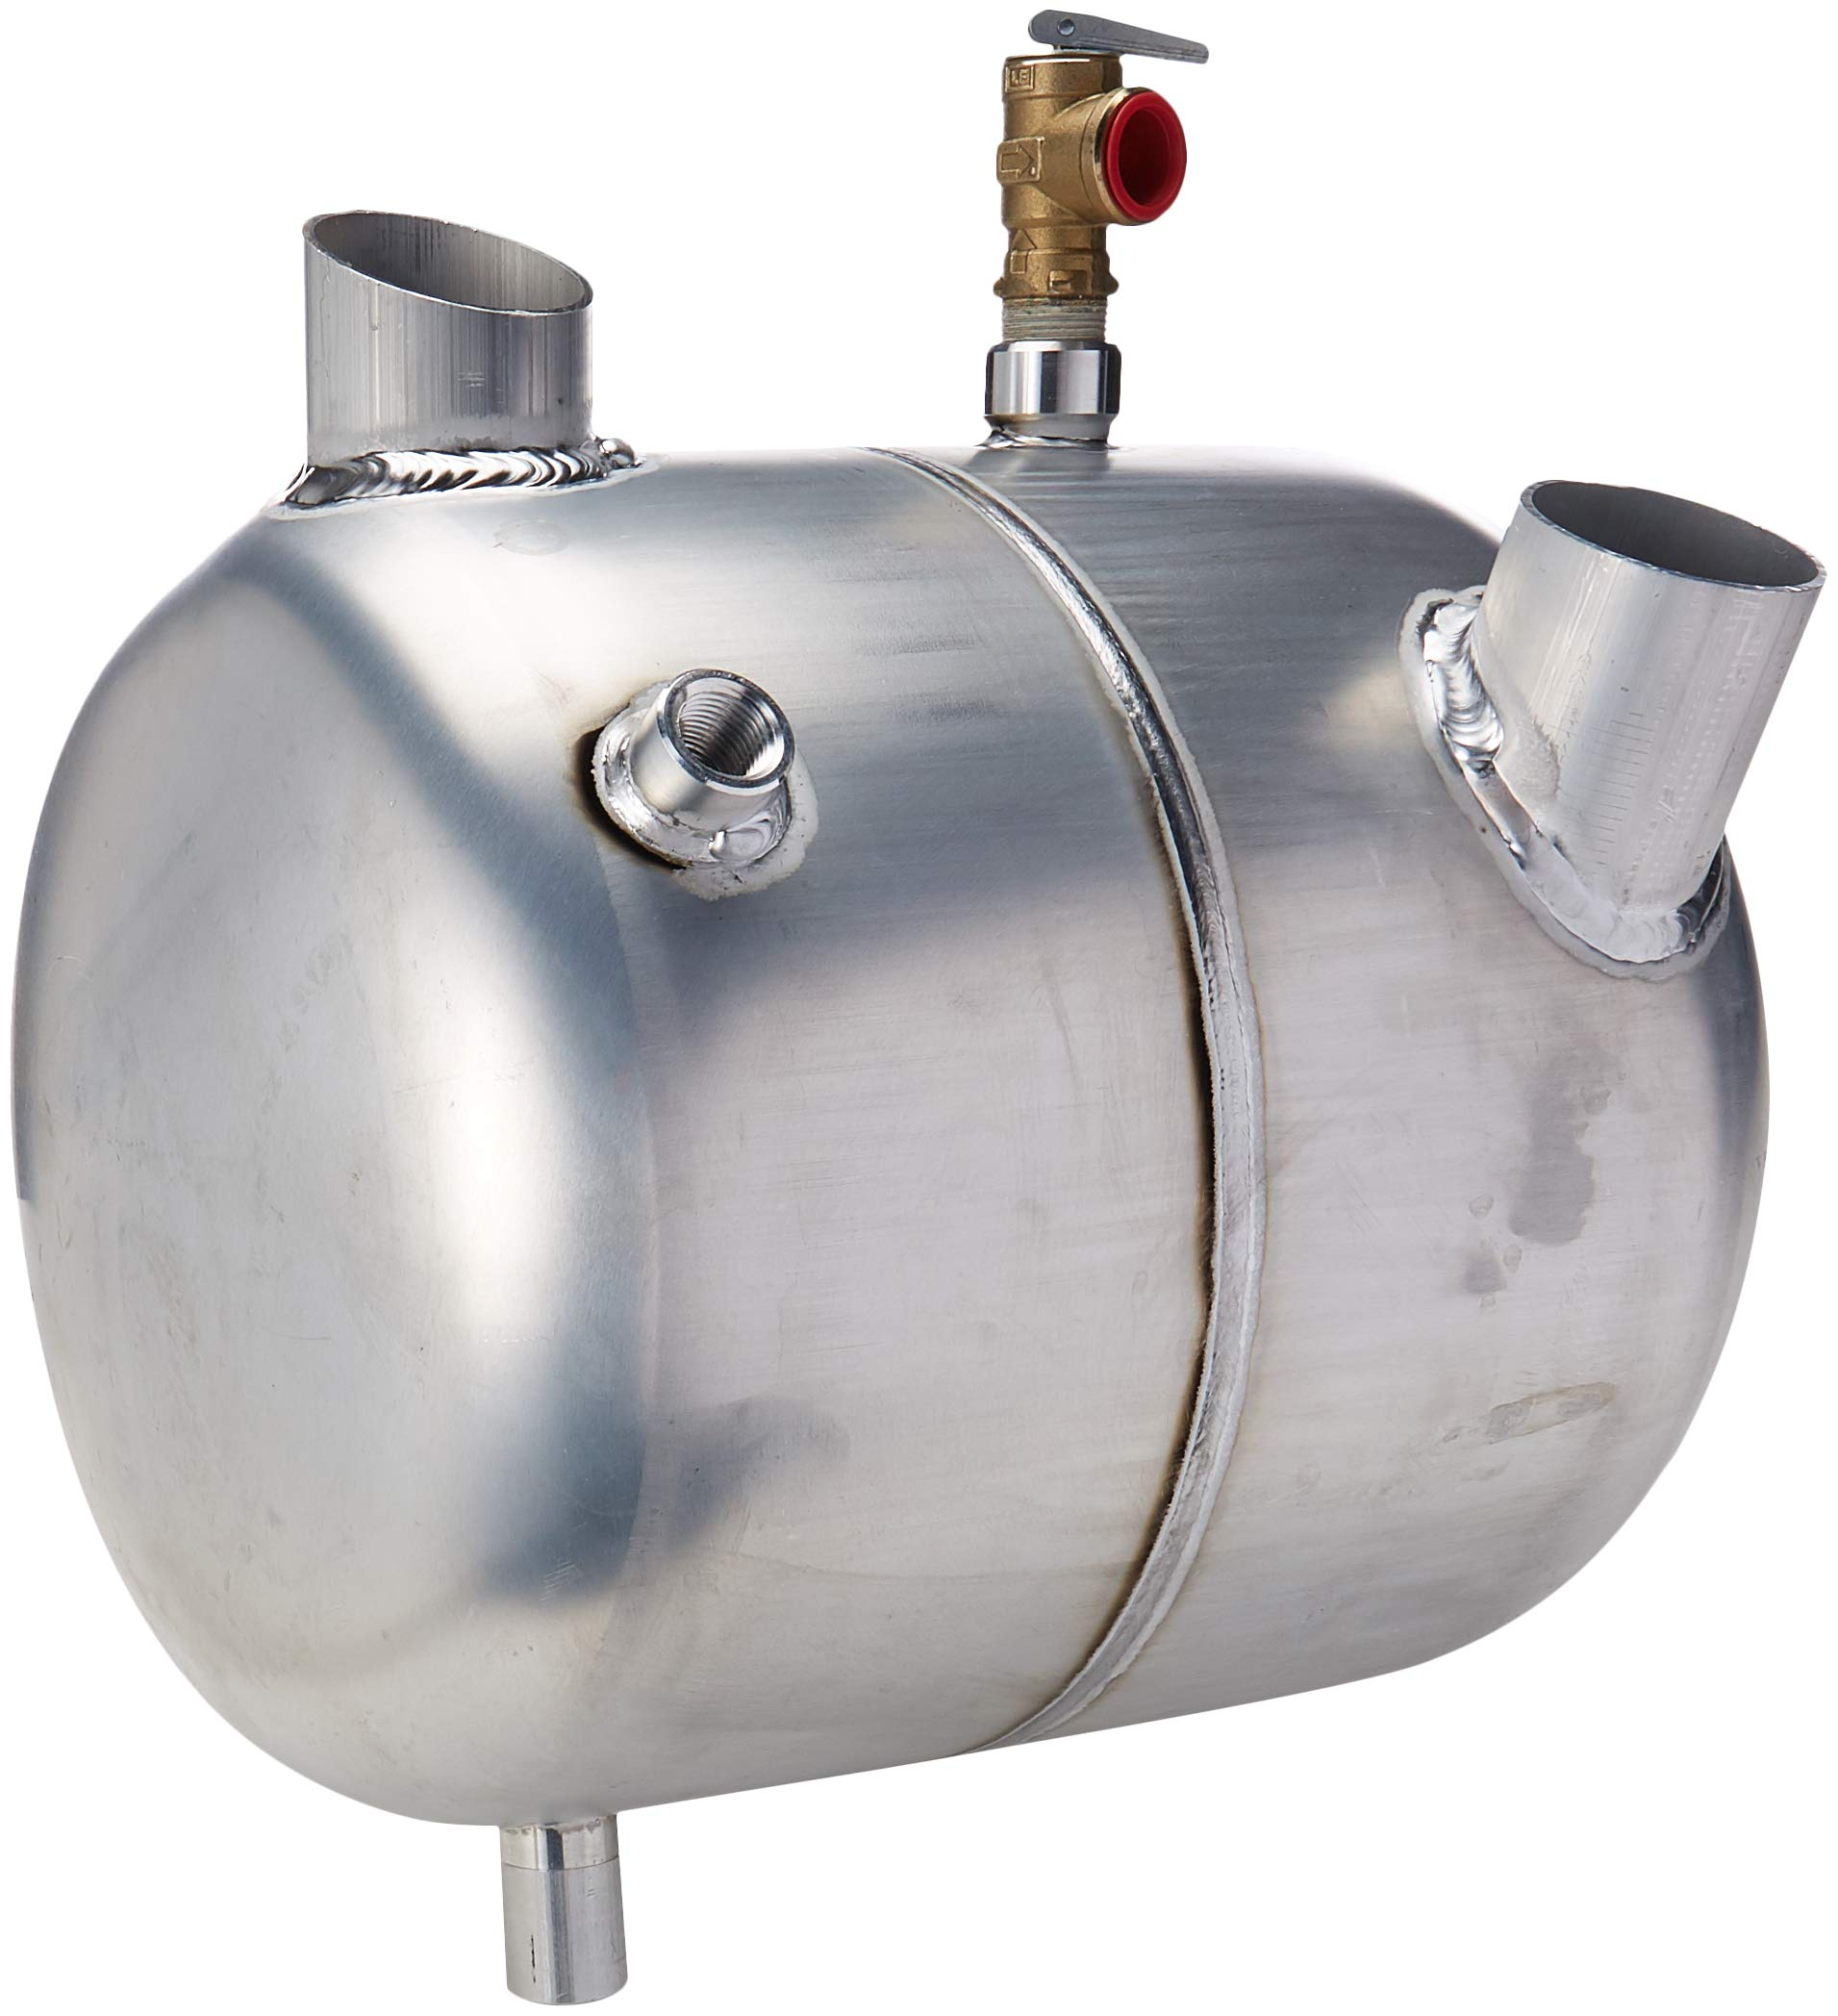 Atwood 91641 Water Heater Replacement Inner Tank Kit Camper Trailer RV by Atwood